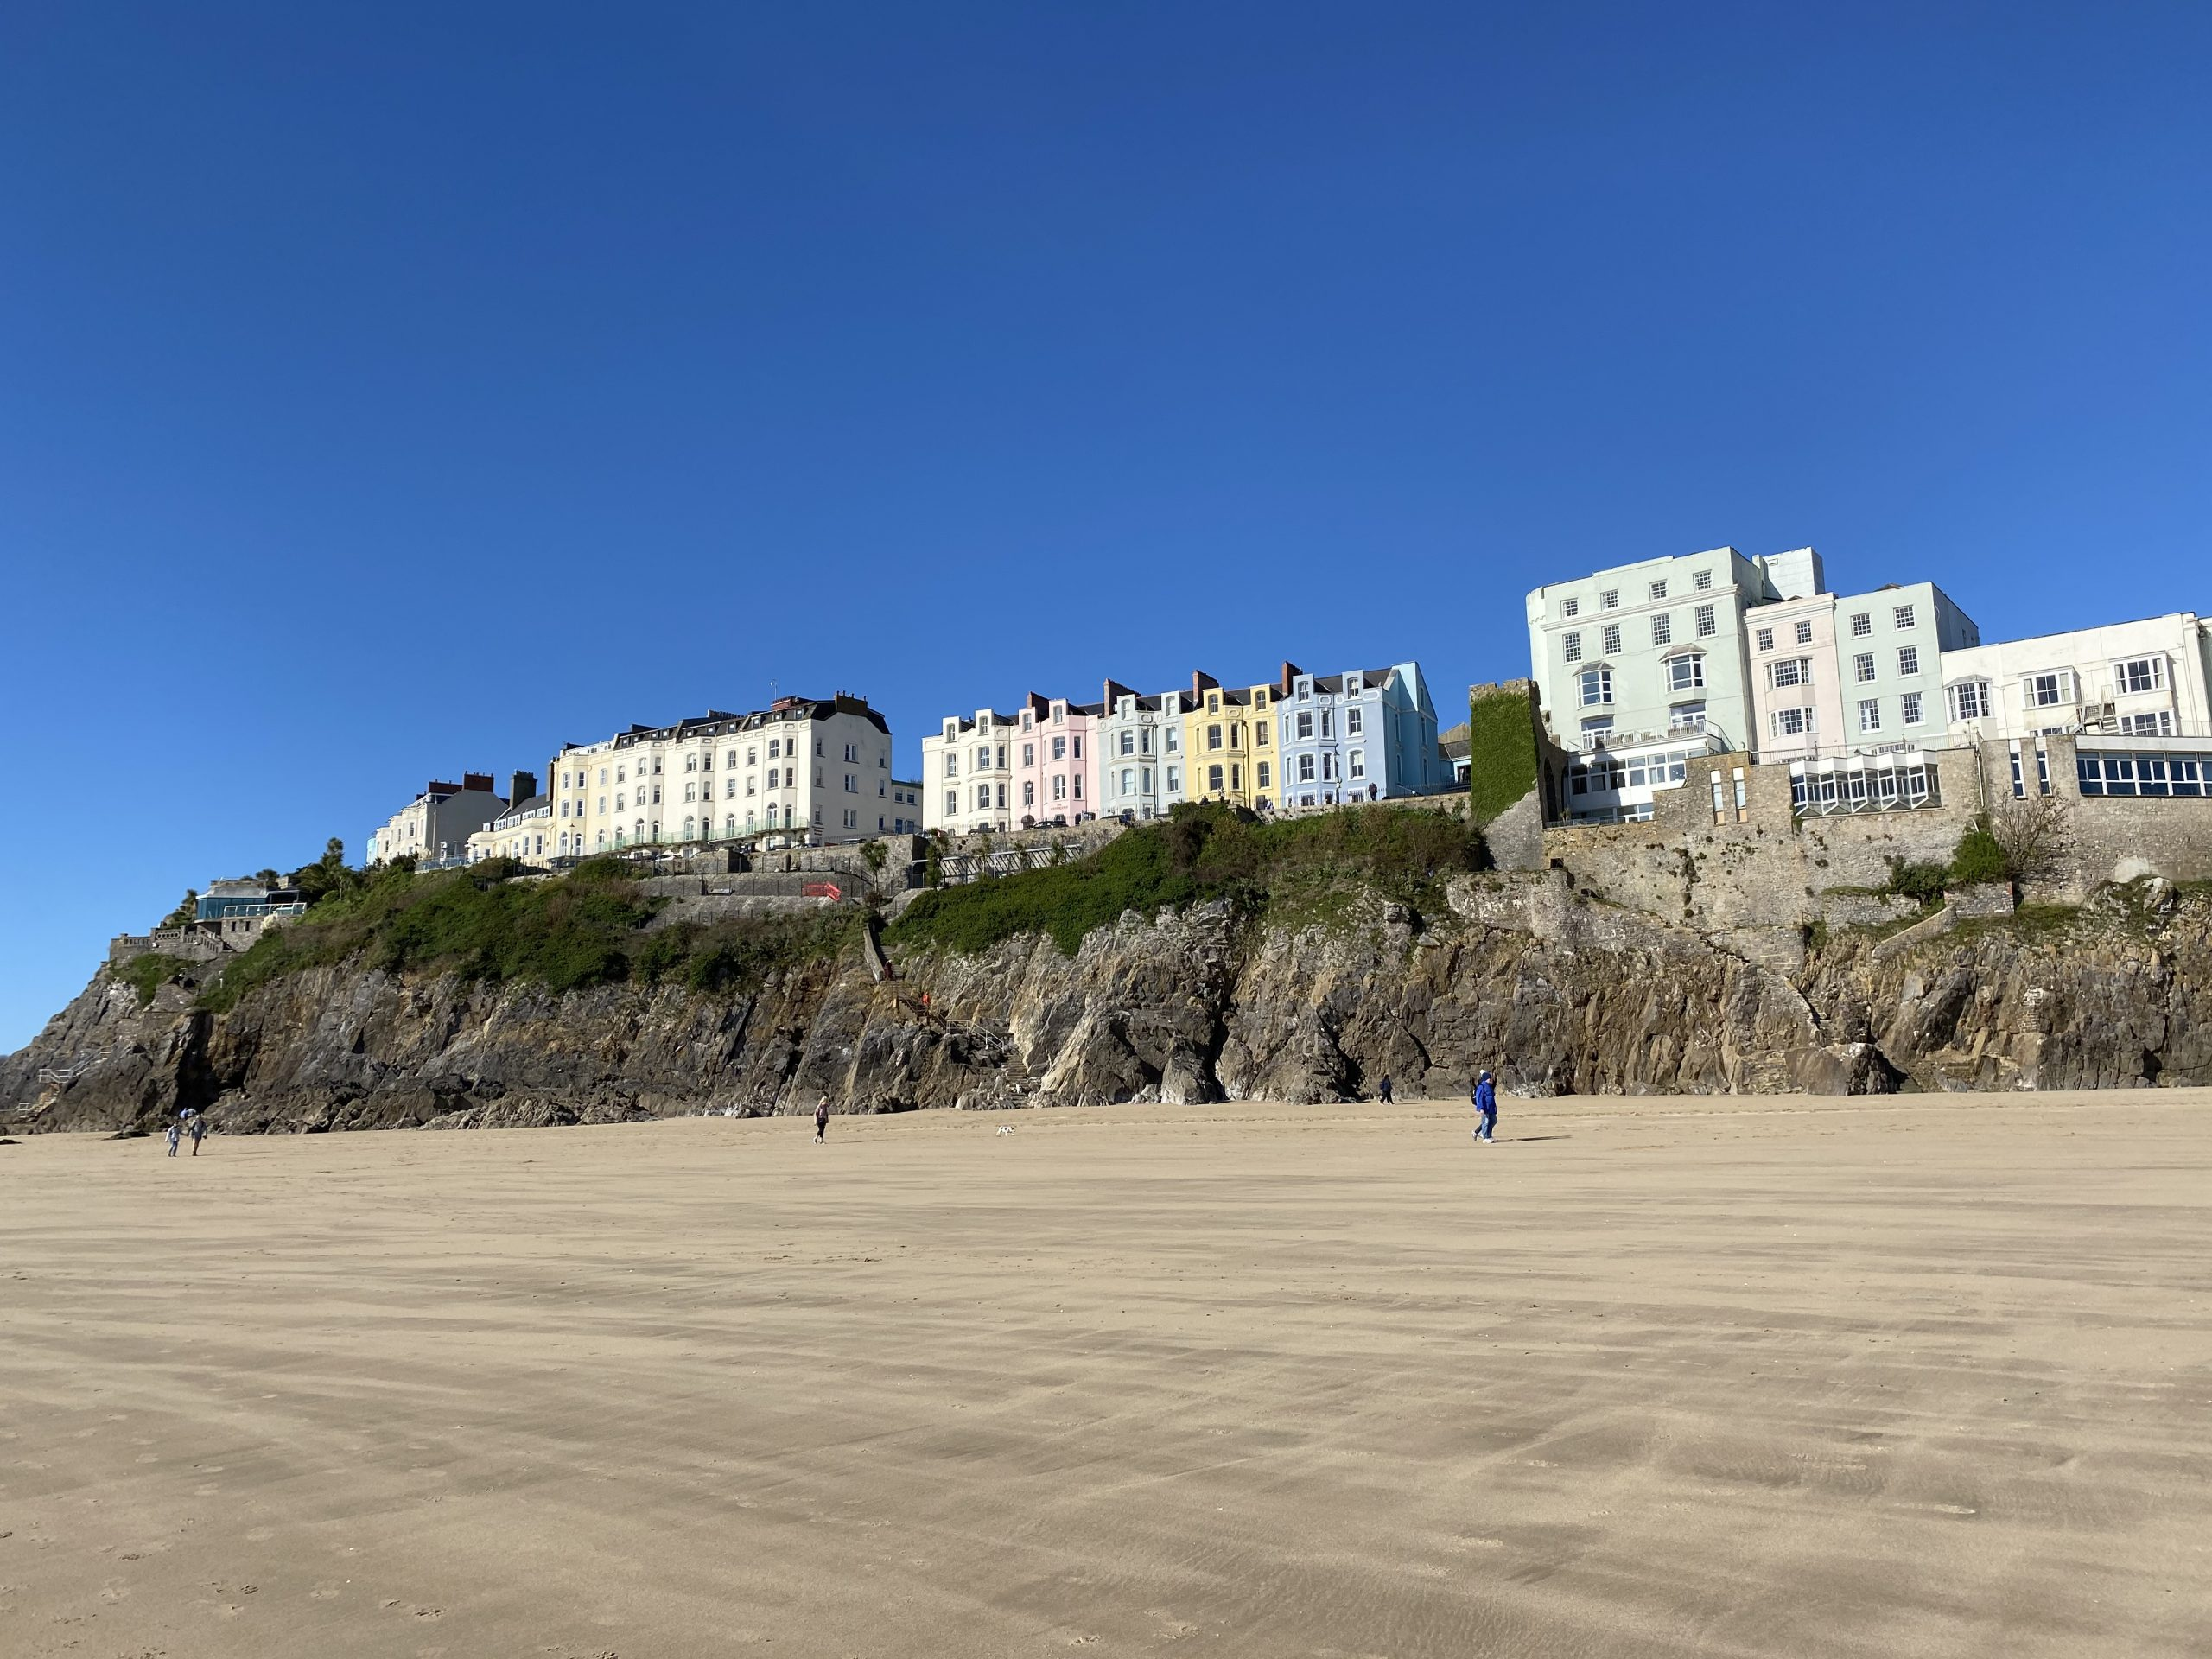 Tenby from the beach